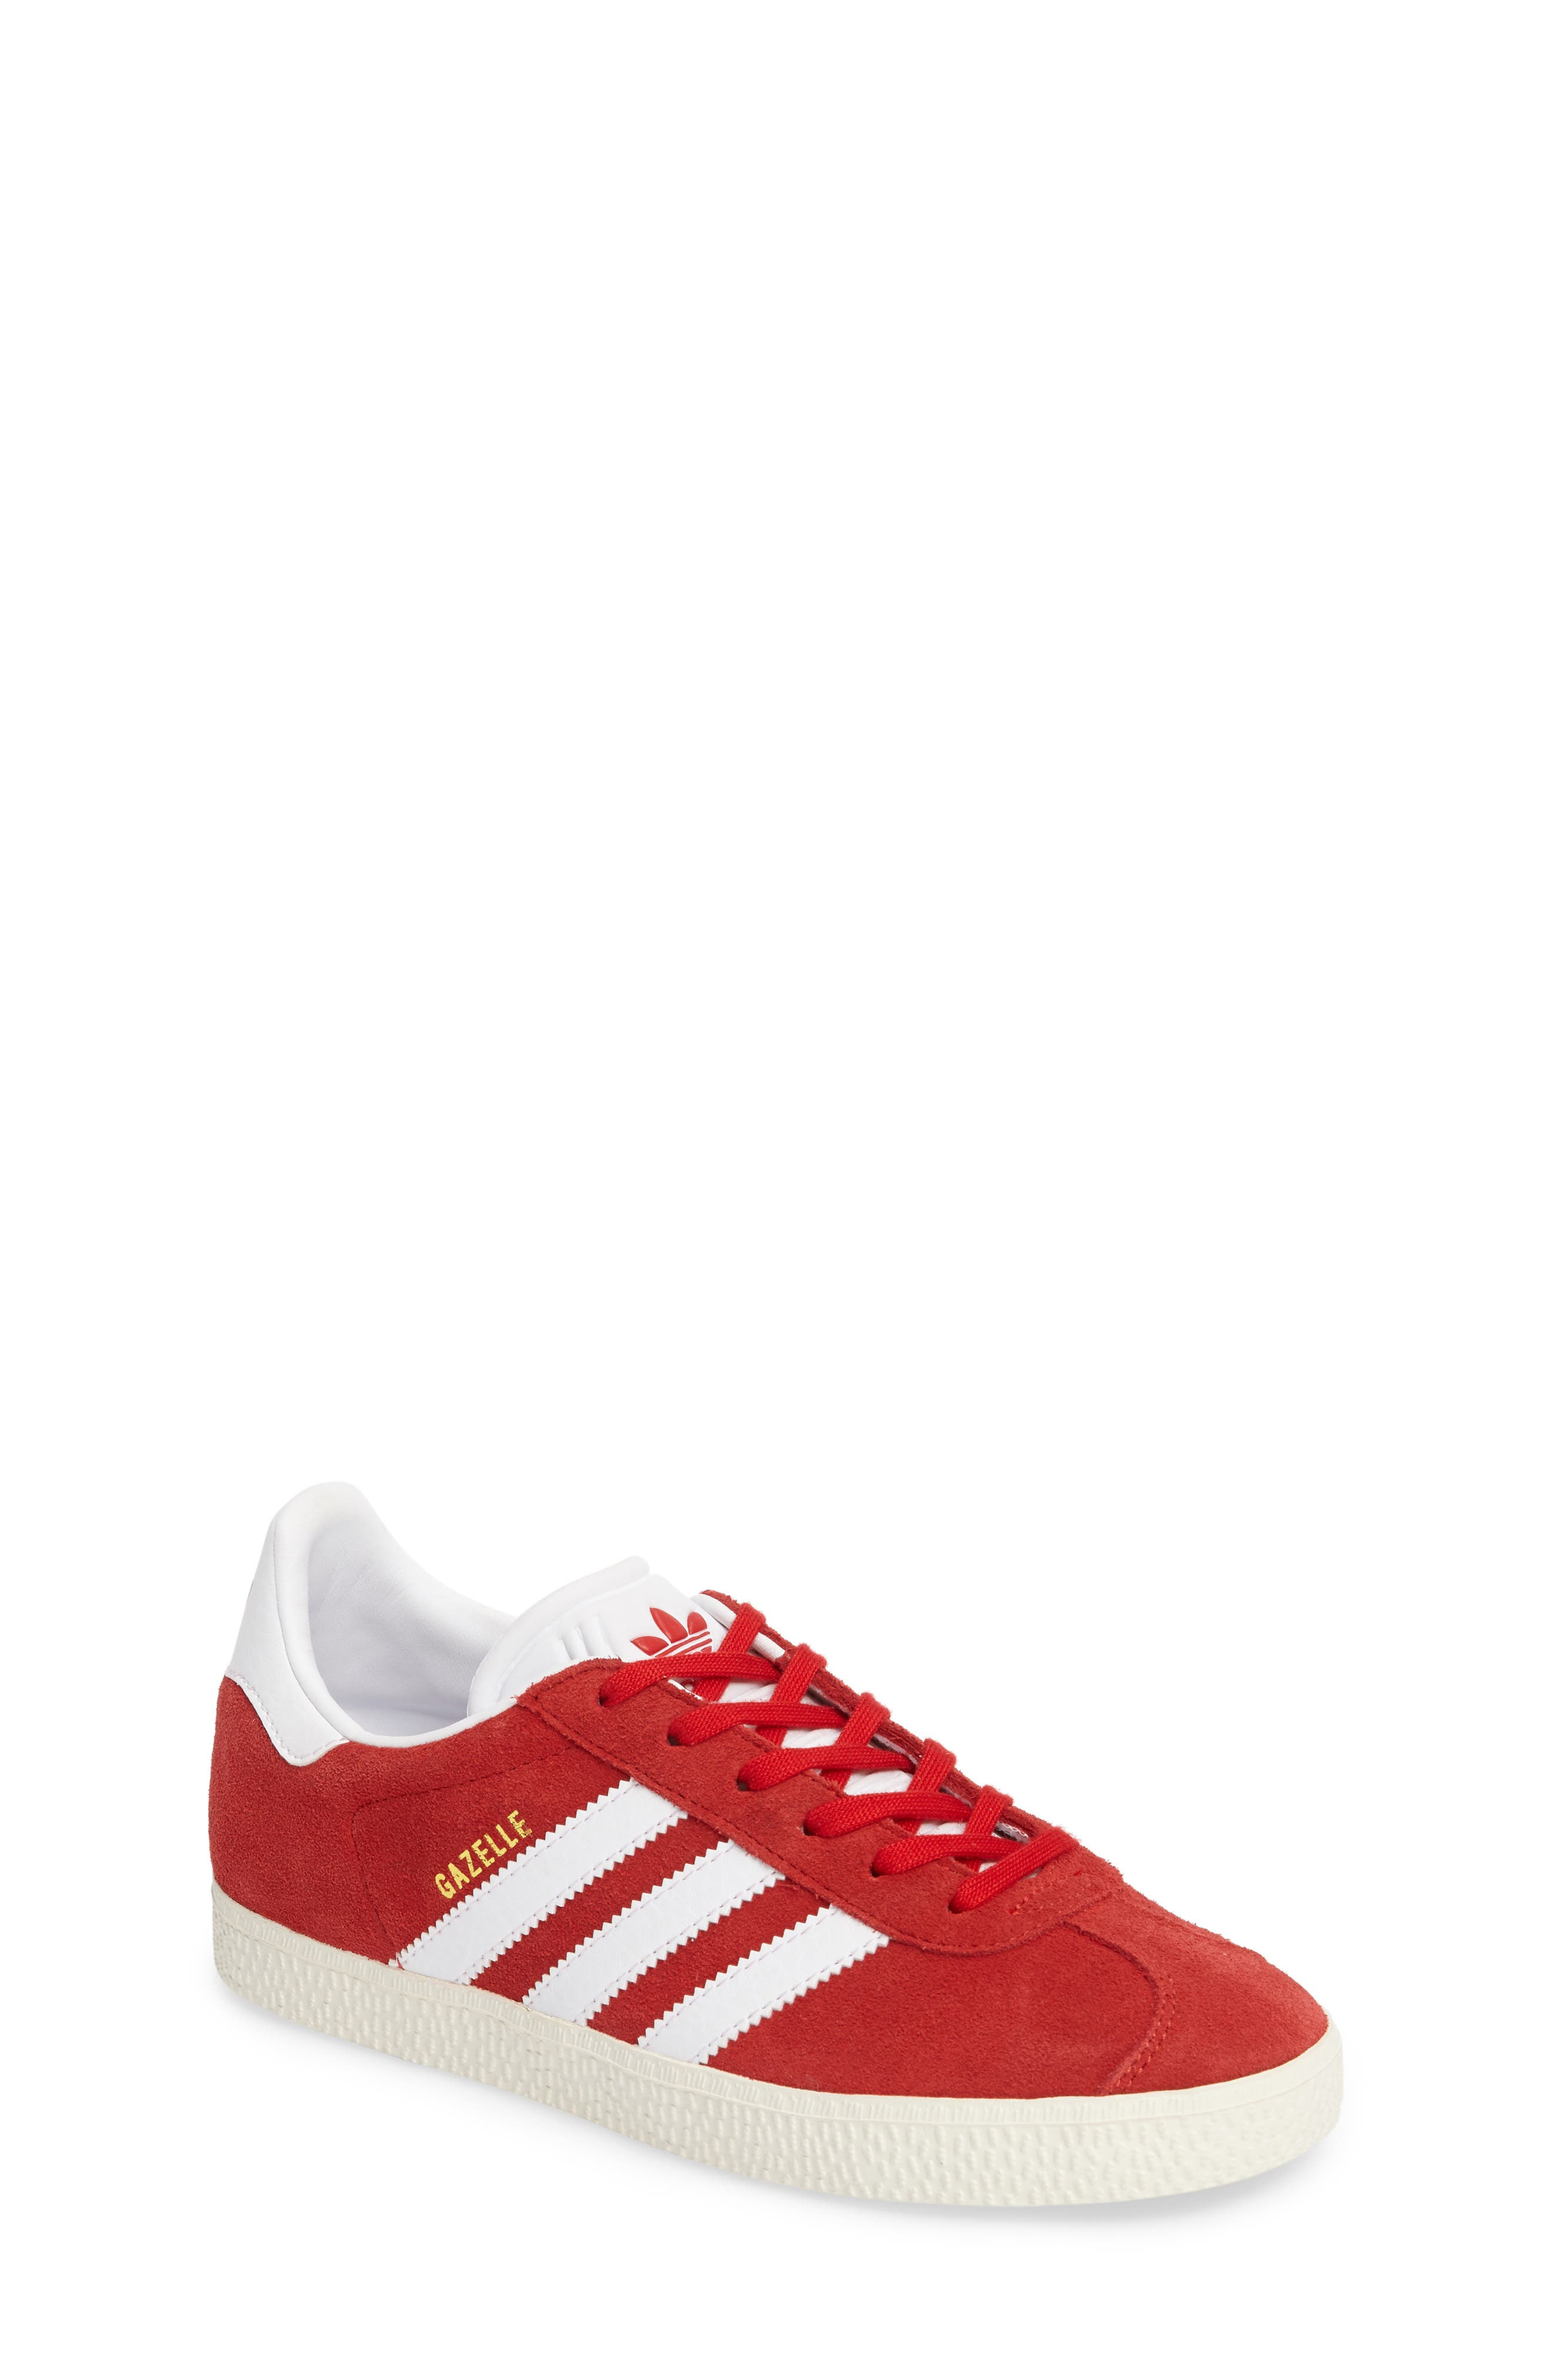 Alternate Image 1 Selected - adidas Gazelle Sneaker (Big Kid)